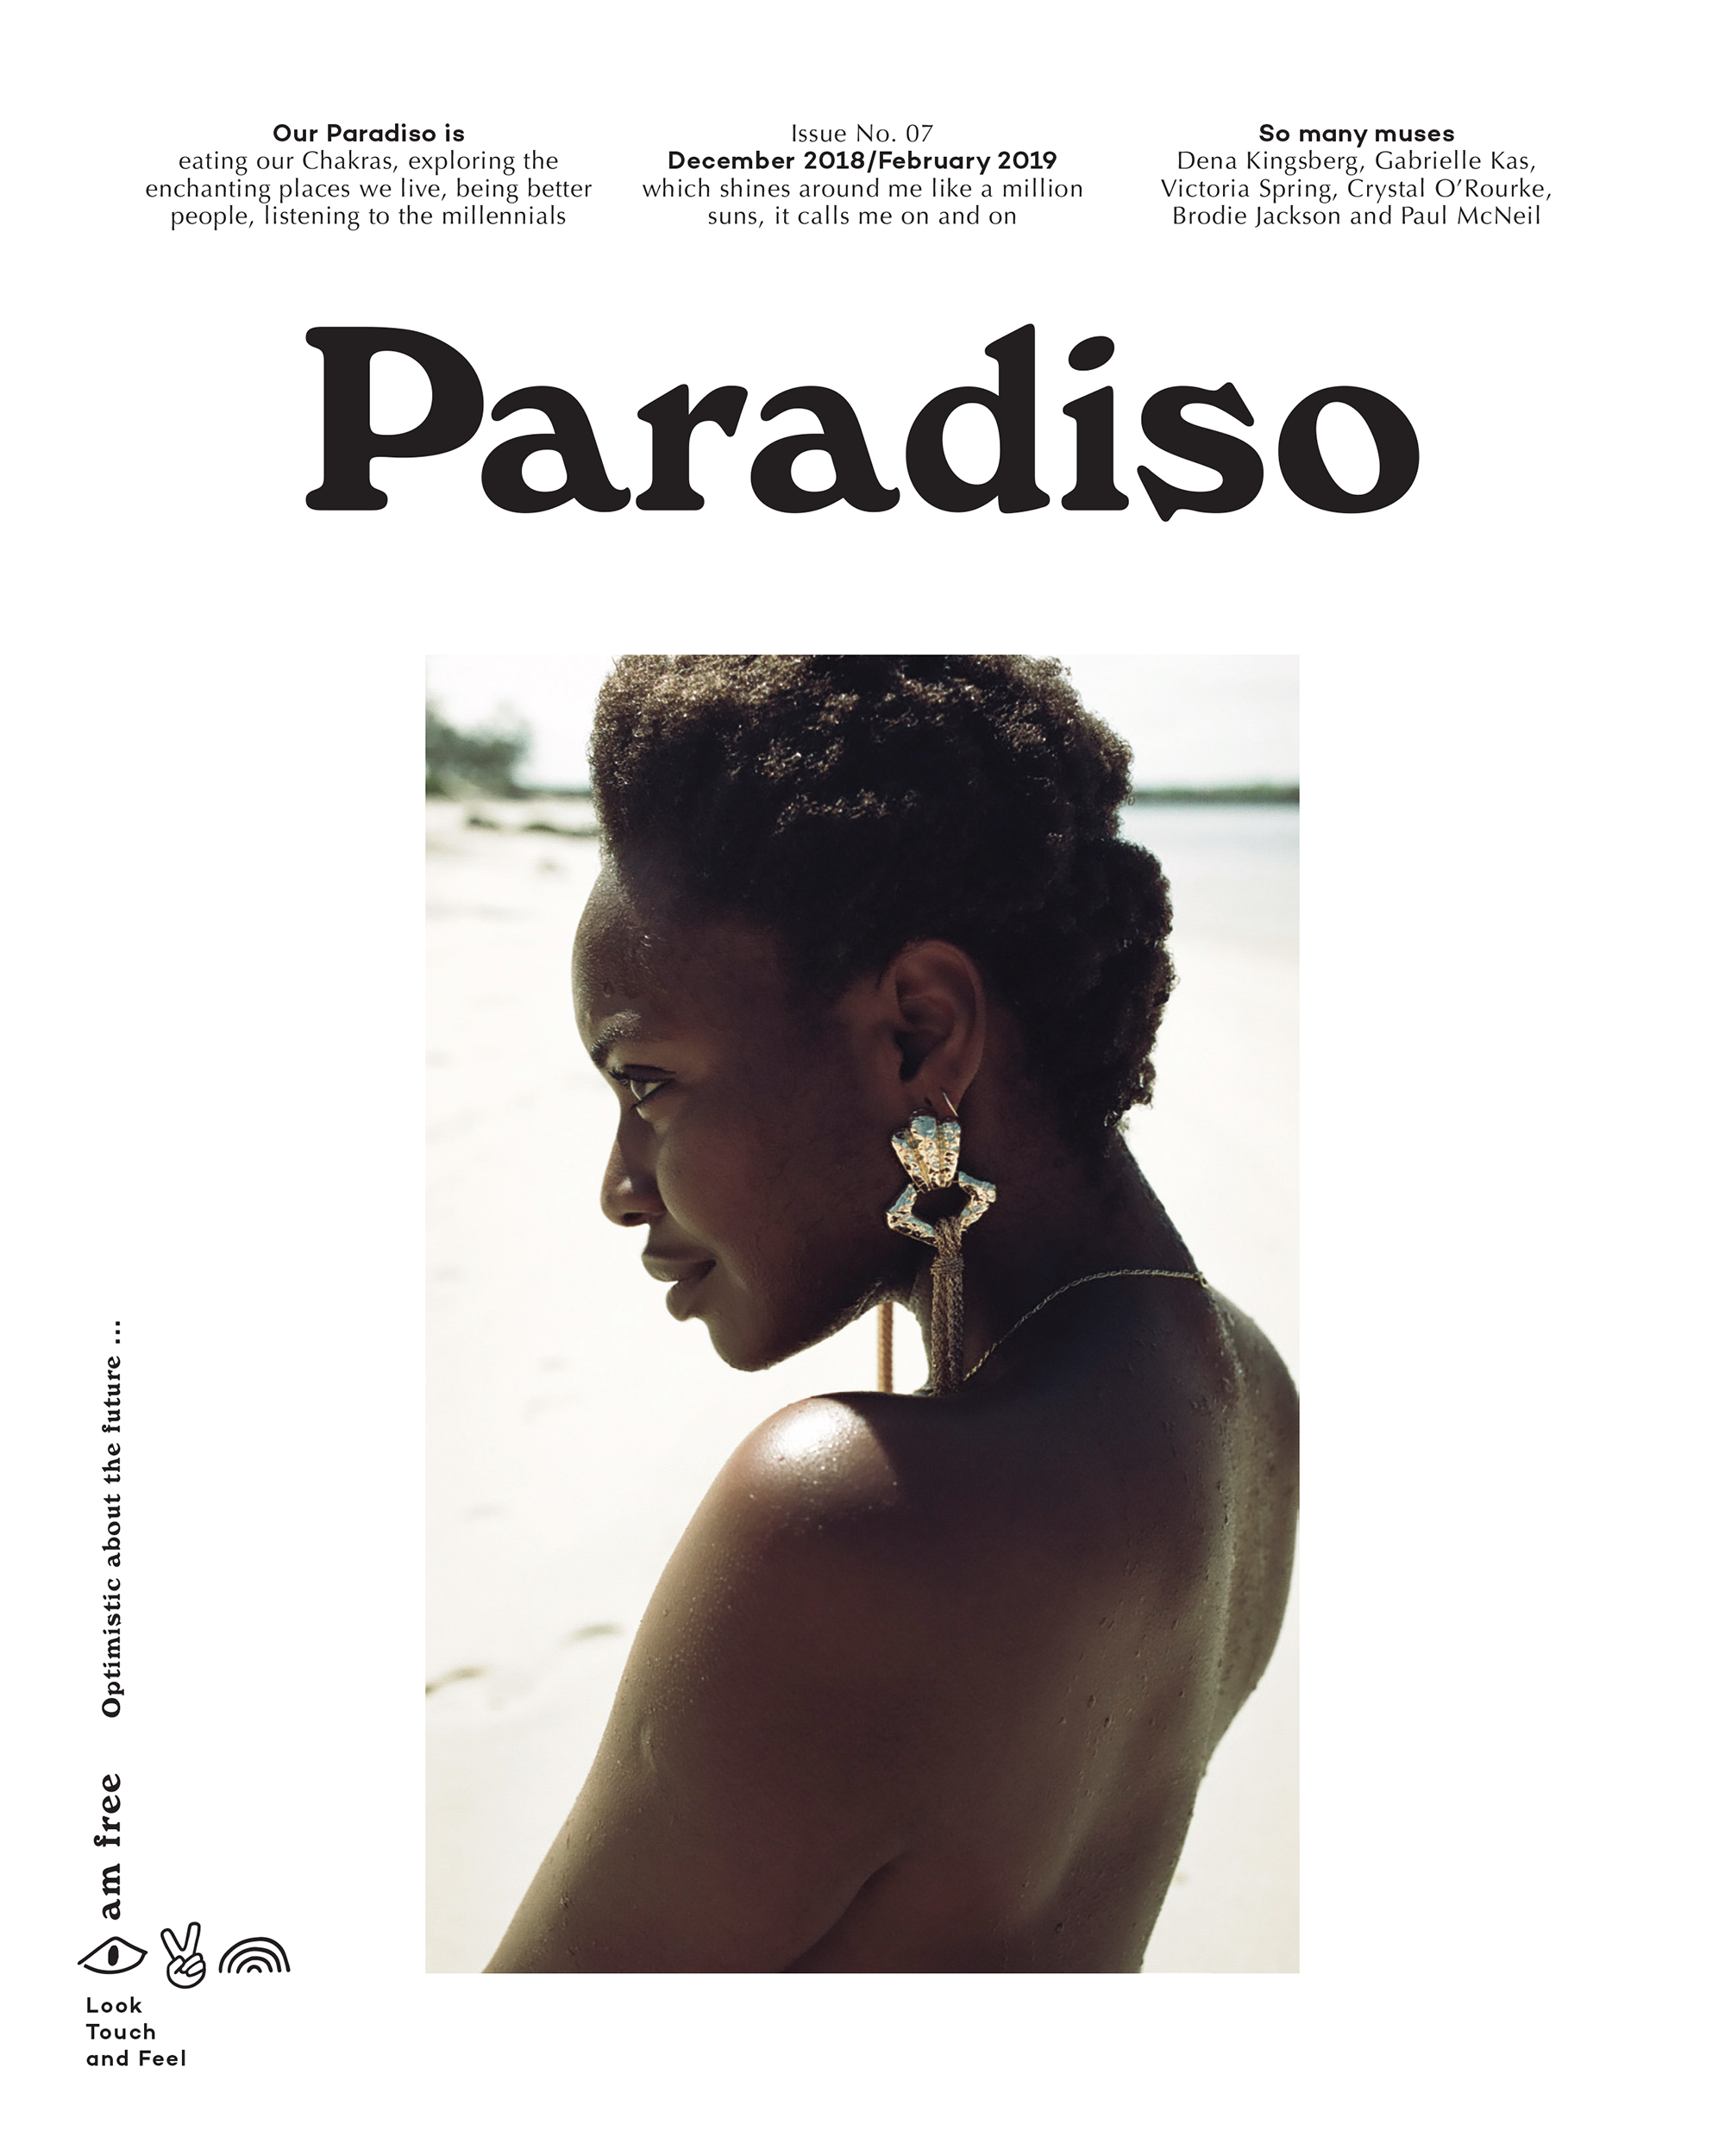 Paradiso Issue 07: Optimistic about the future ...